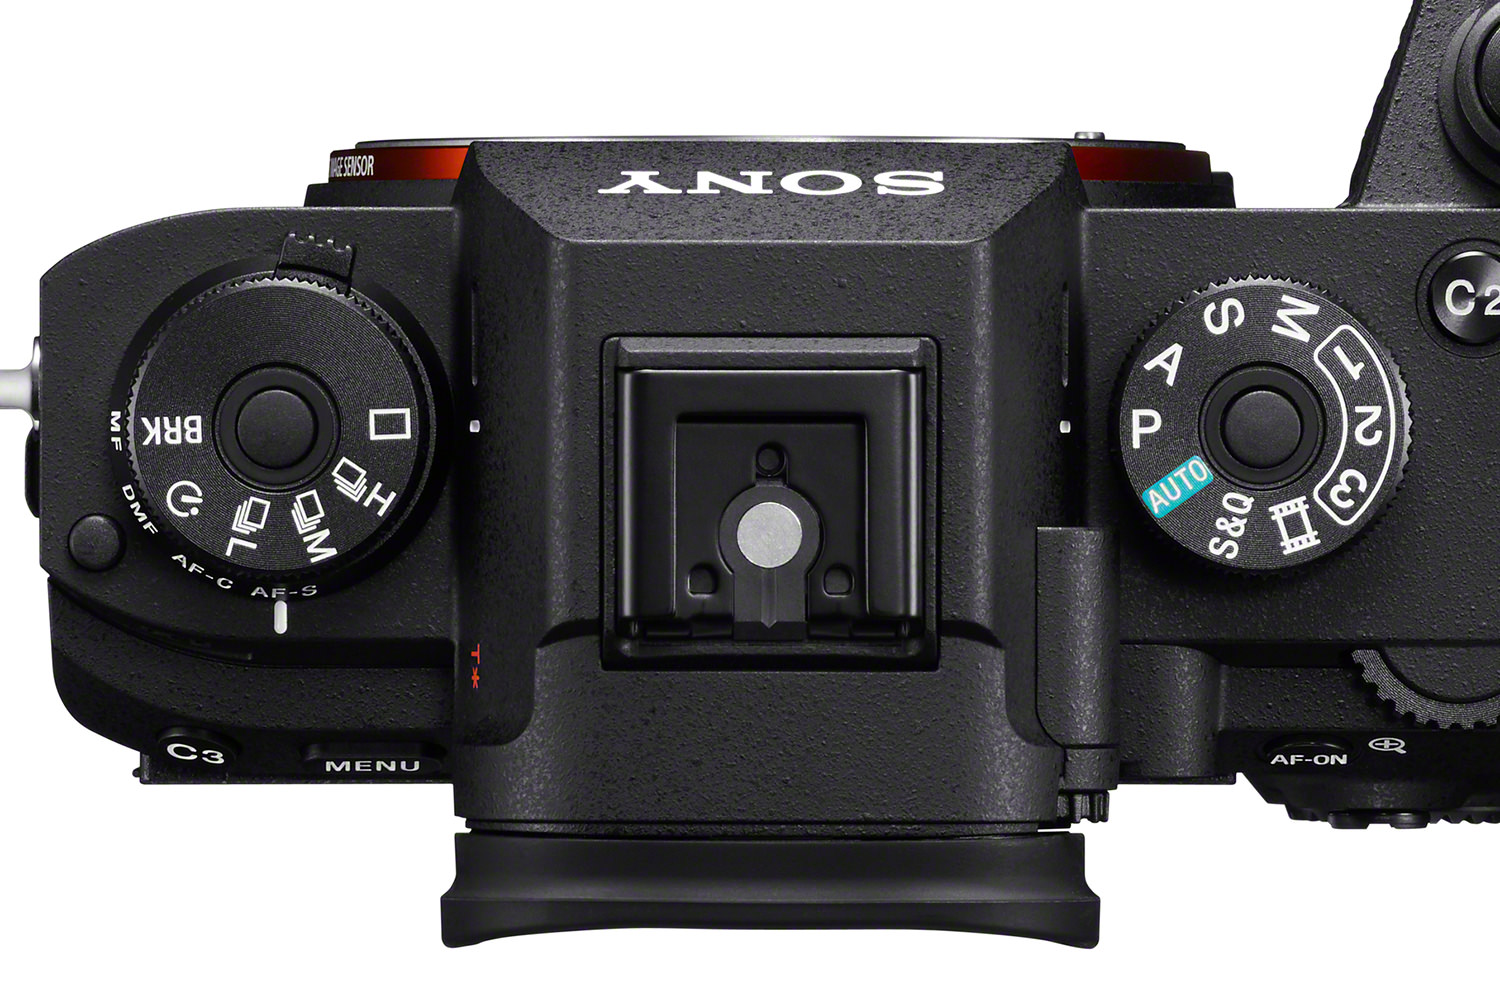 The Sony A9 has a Drive select wheel which the A7III lacks.